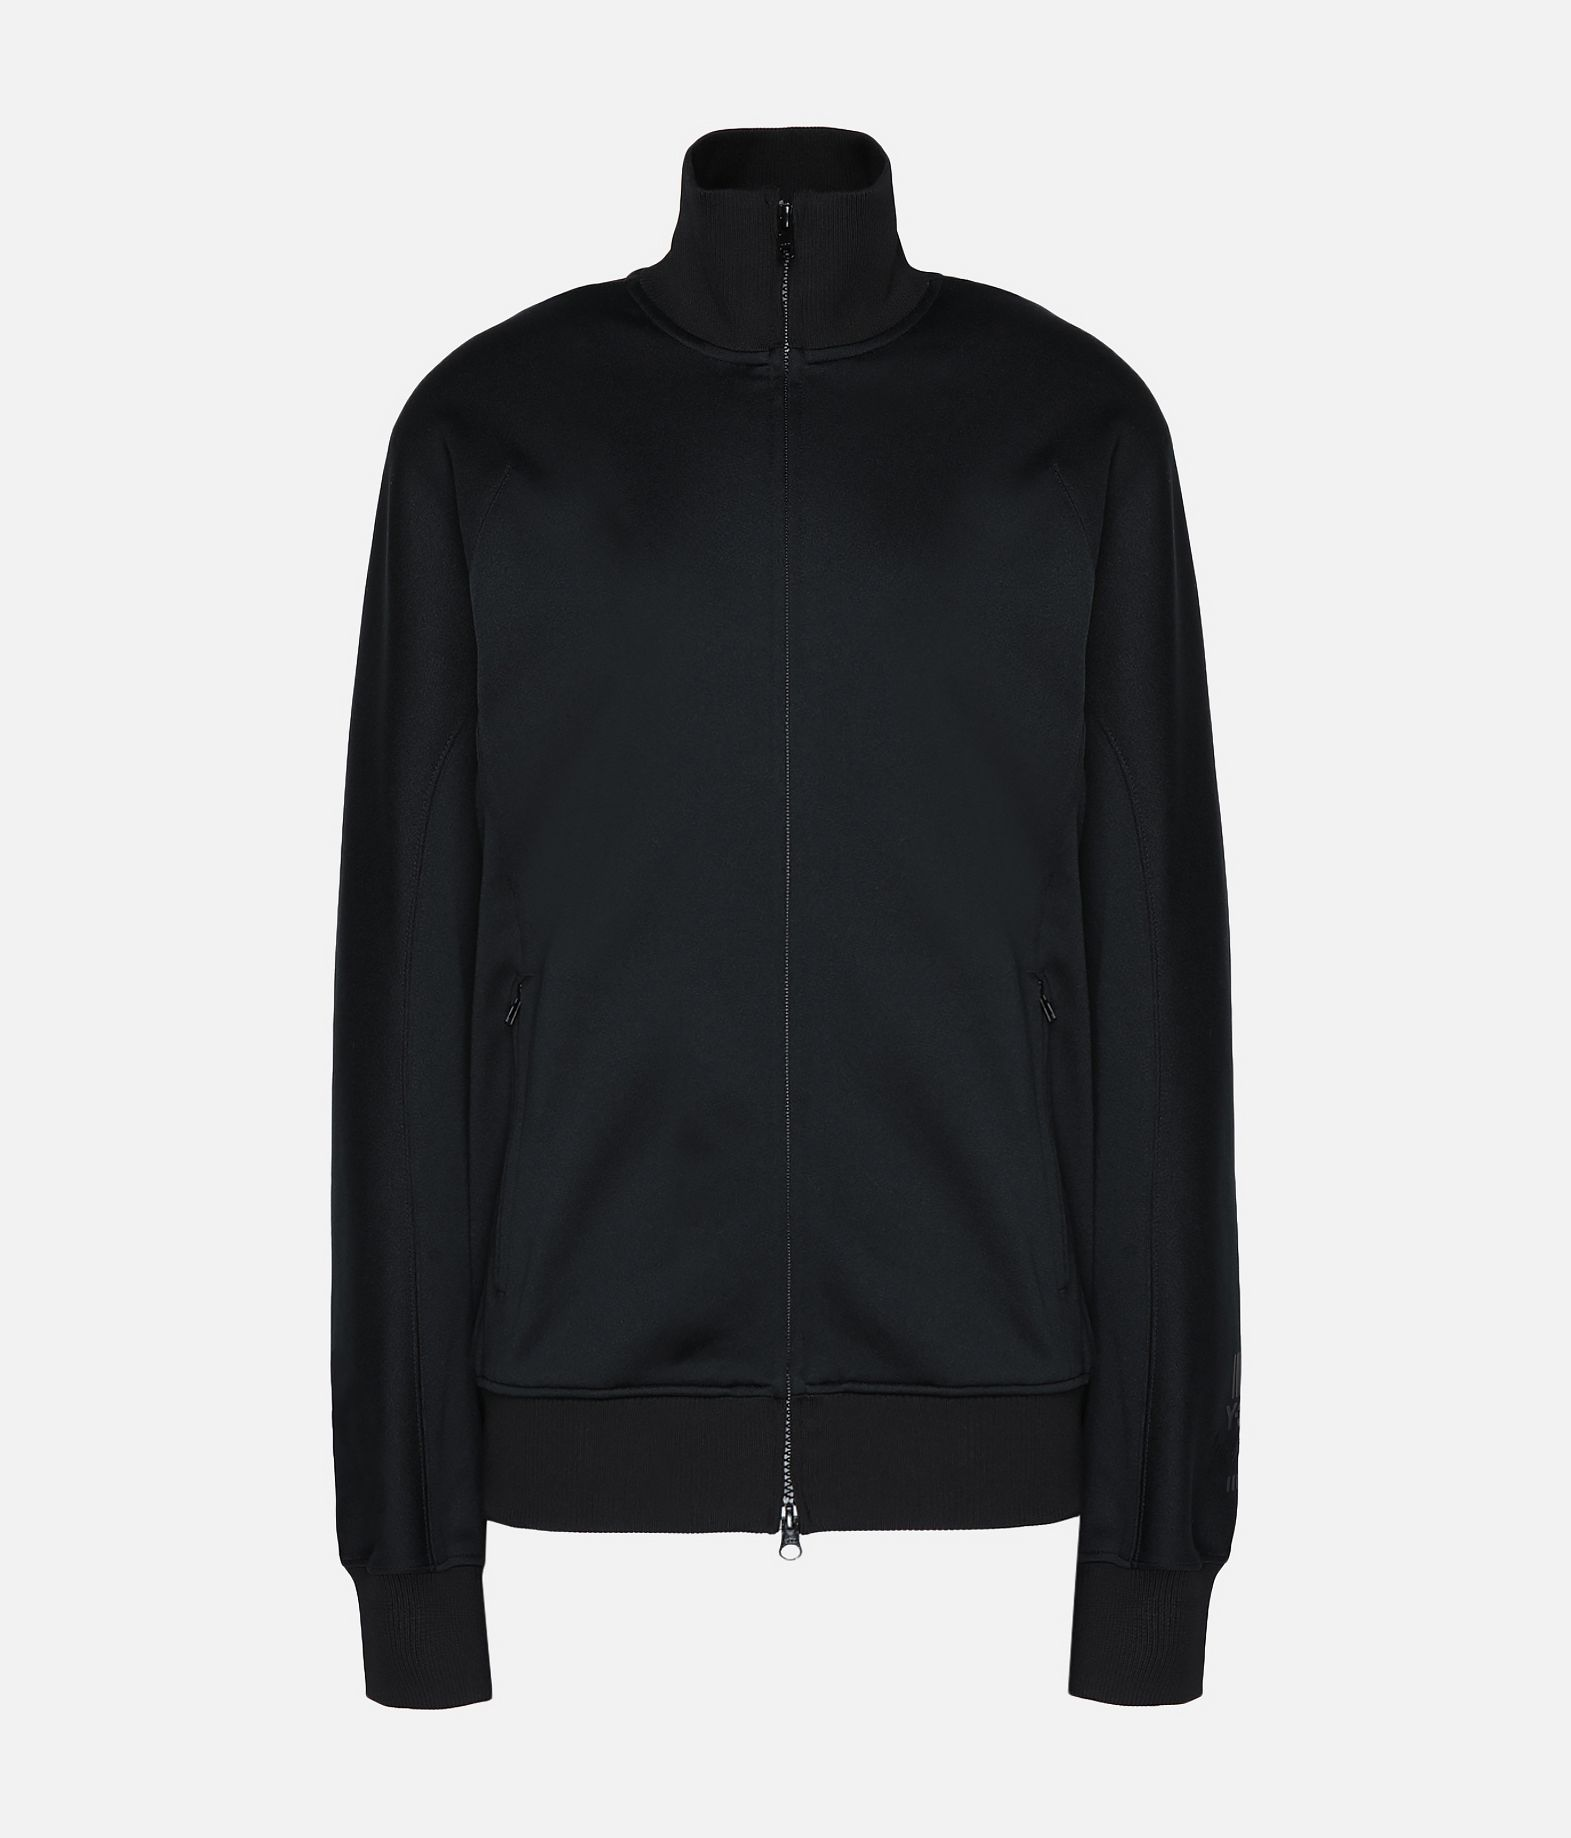 Y-3 Y-3 New Classic Track Jacket Giubbotto Donna f